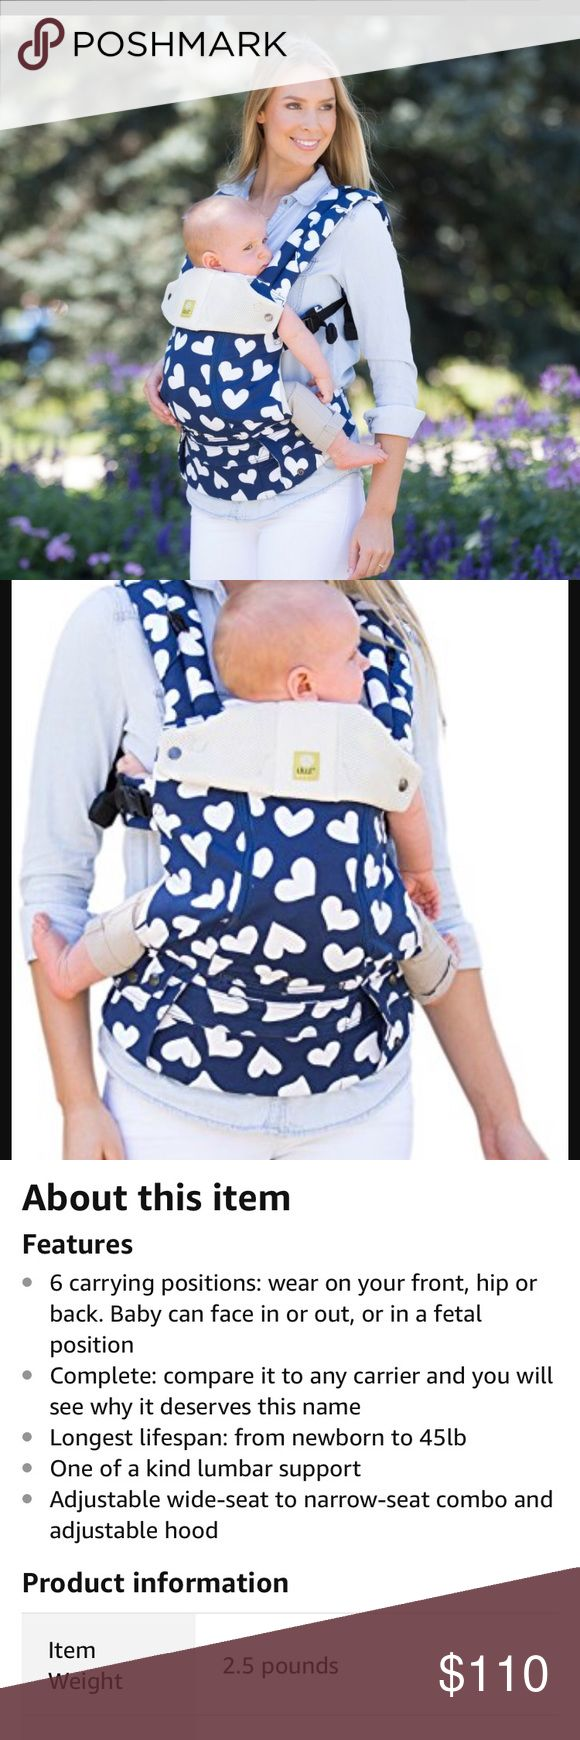 Make a offer Lille baby carrier make me a offer Nice and good conditions , used 5 times .  Household free of any pets, smoke 💨 is super clean we have OCD when it comes to cleaning so don't need to worry about things been dirty make me a offer lille Other